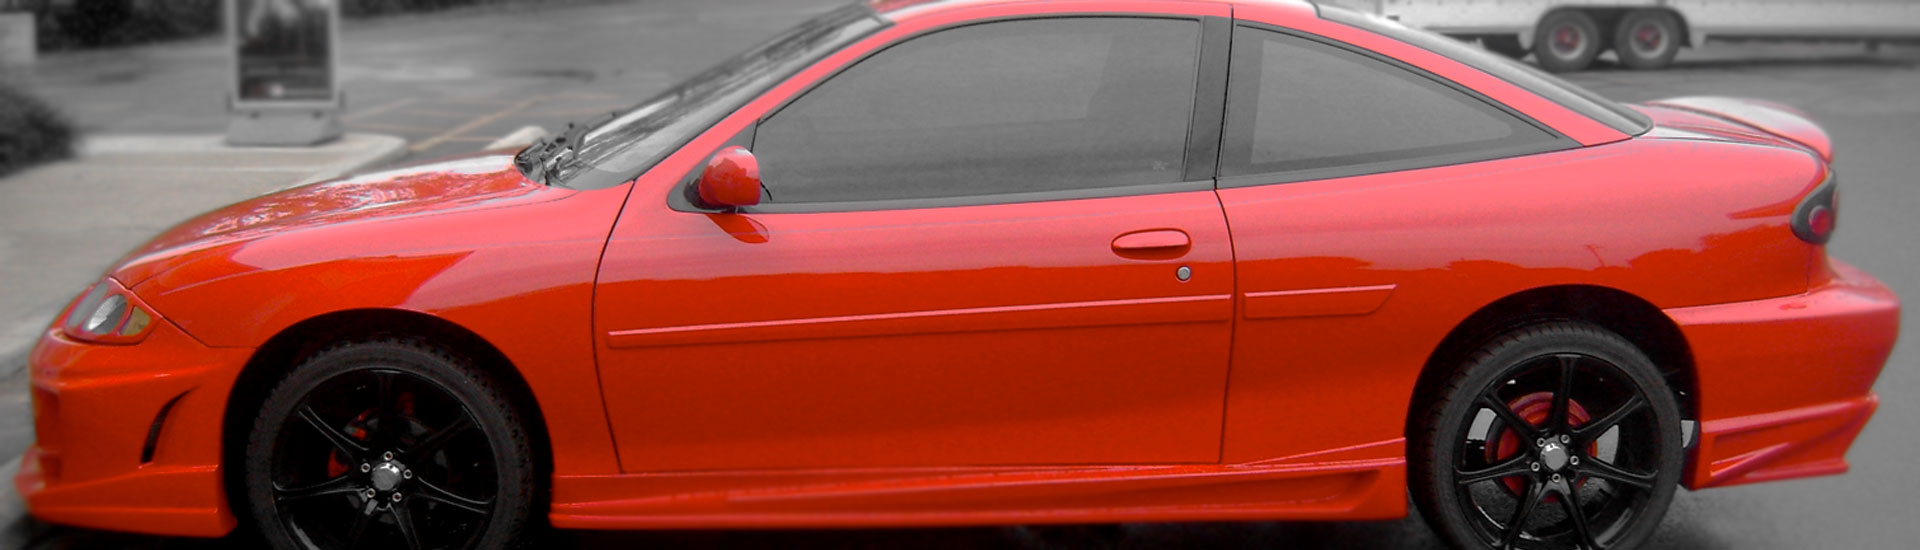 Chevrolet Cavalier Window Tint